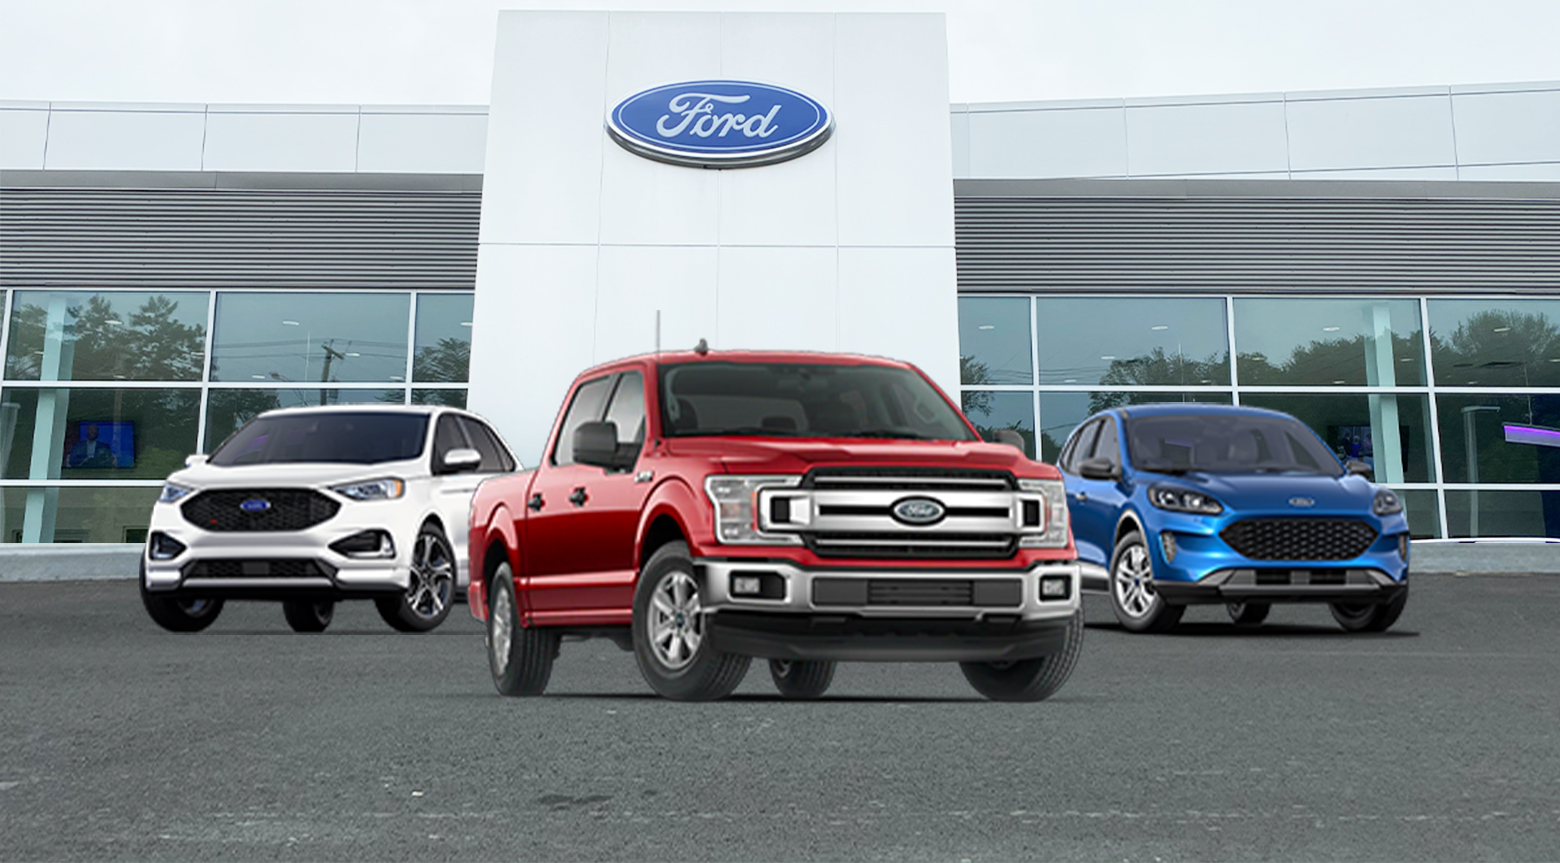 Ford lineup outside the dealership